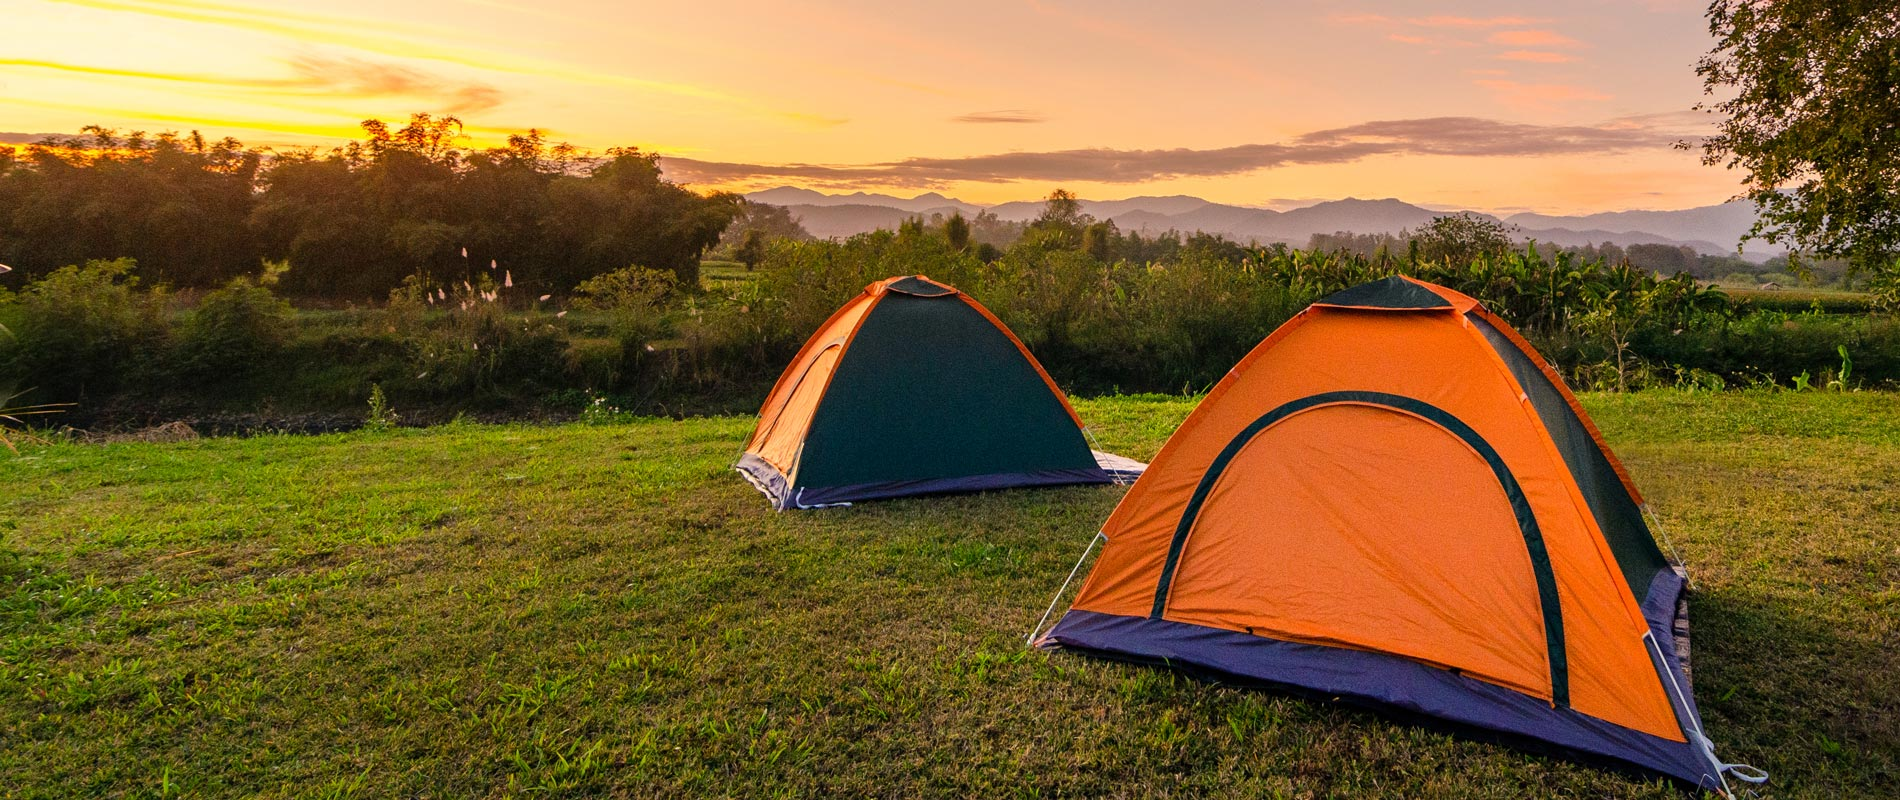 How to have a successful summer camping trip | Experience ...